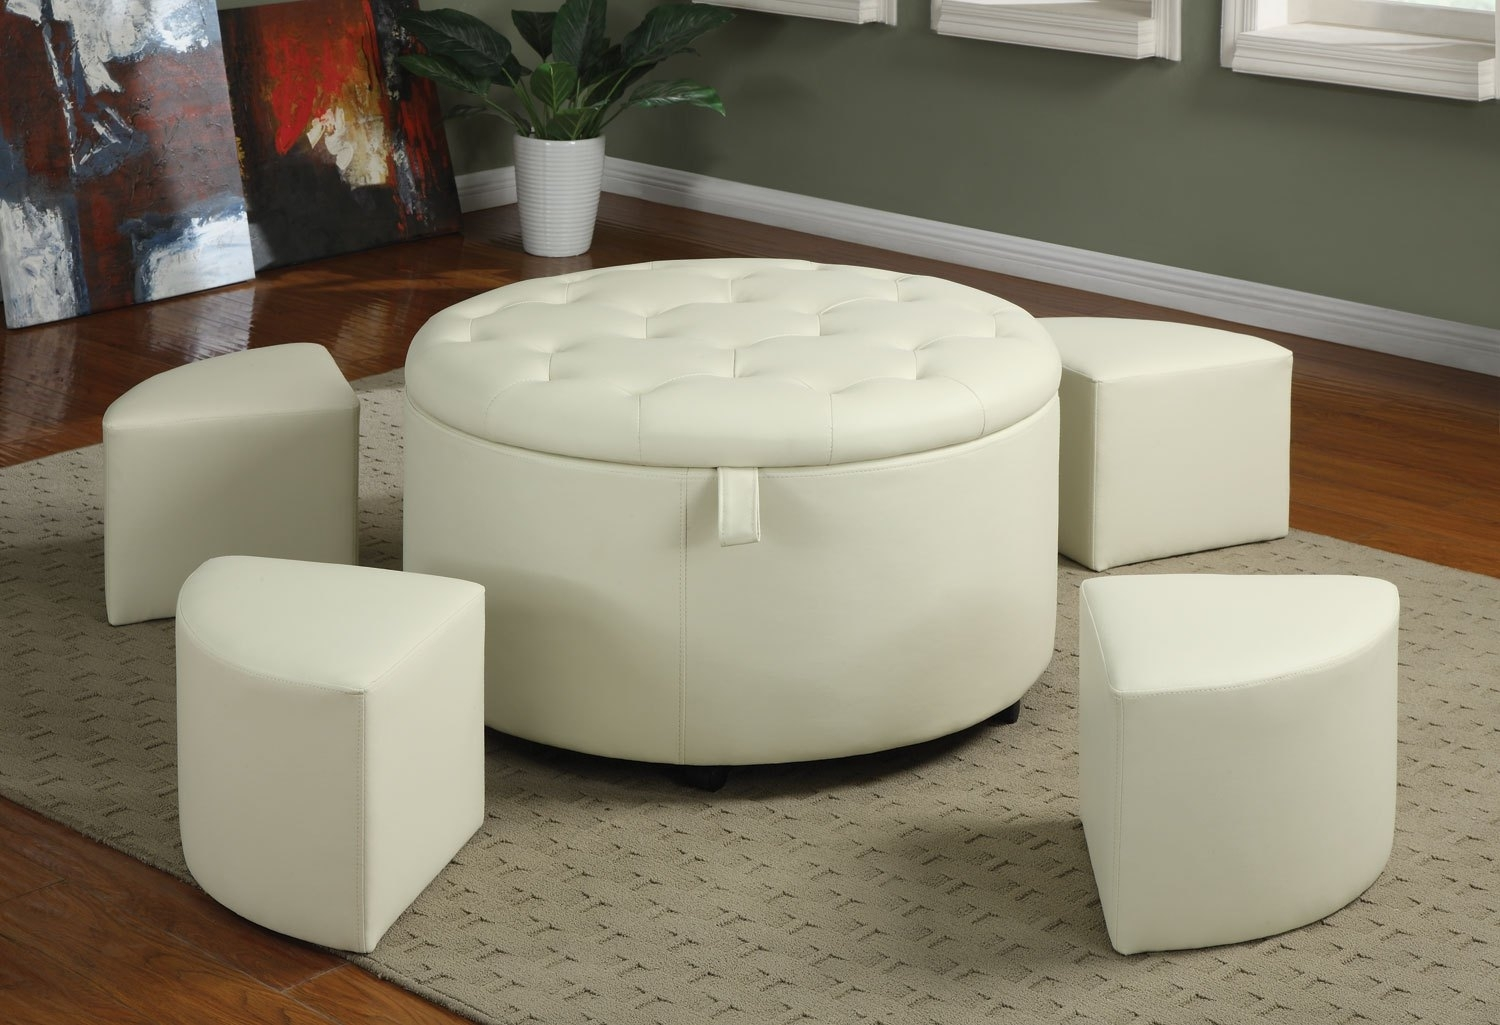 Rousing Coffee Table Large Round Ottoman Coffee Tables Round Large in Button Tufted Coffee Tables (Image 20 of 30)